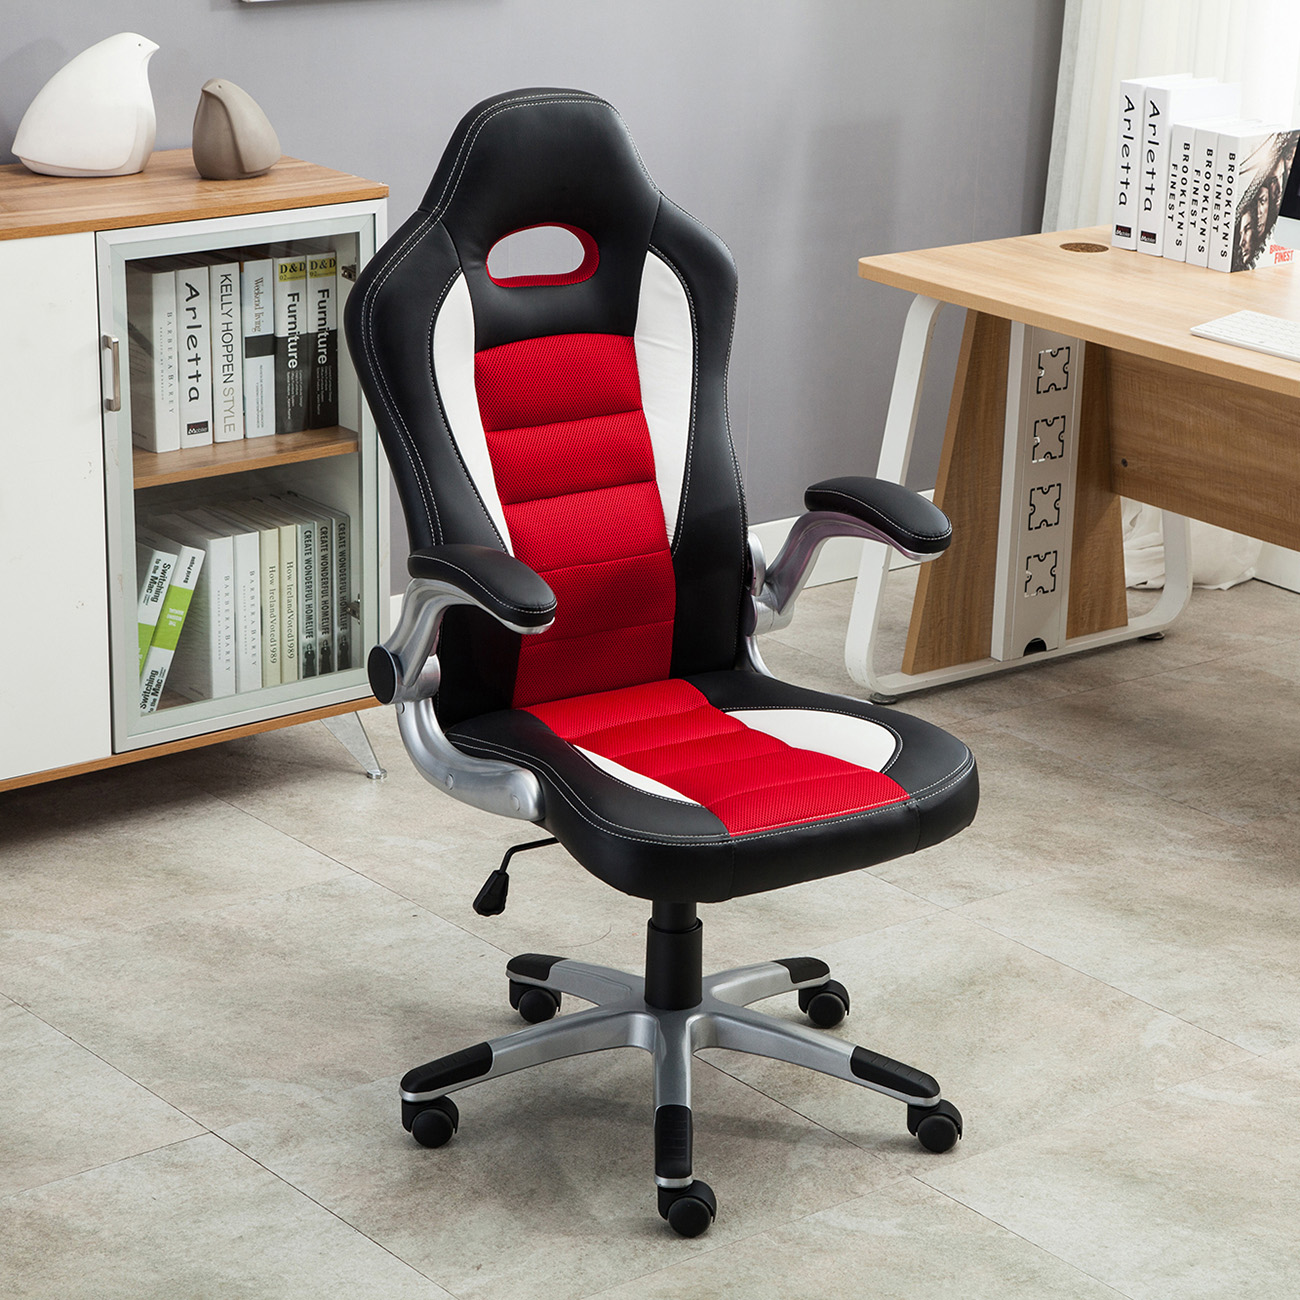 Comfortable Computer Chairs Office Racing Chair Bucket Seat High Back Ergonomic Gaming